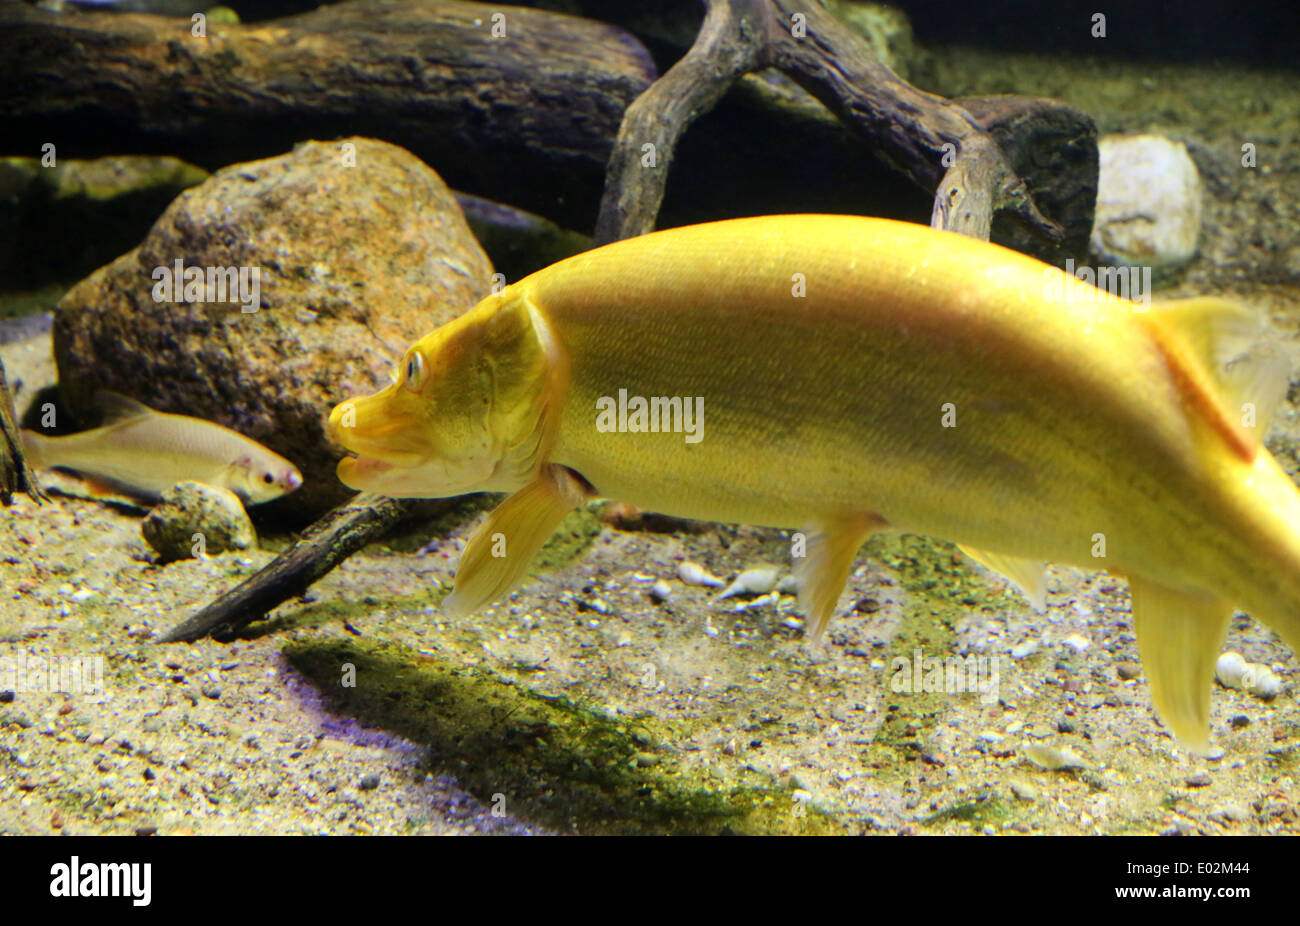 Fish in new aquarium - A Golden Pike Swims In Its New Aquarium Next To A Roach Prey Fish In The Mueritzeum Nature Discovery Centre In Waren Germany 30 April 2014